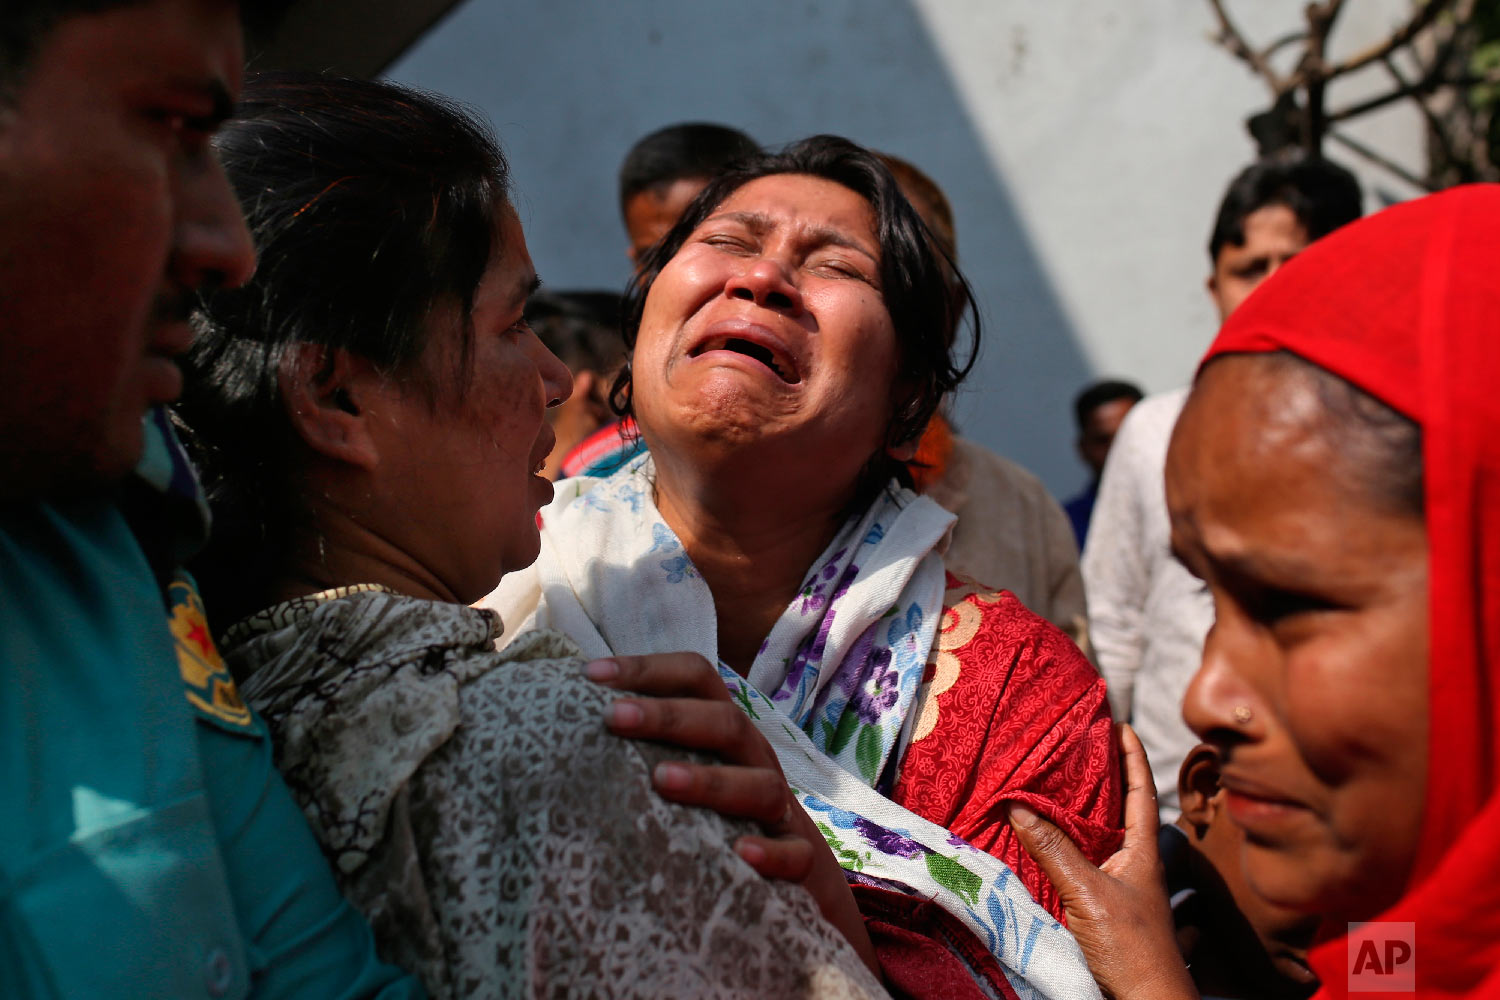 A Bangladeshi woman mourns the death of a relative in a fire, outside a morgue in Dhaka, Bangladesh, Thursday, Feb. 21, 2019. (AP Photo/Rehman Asad)